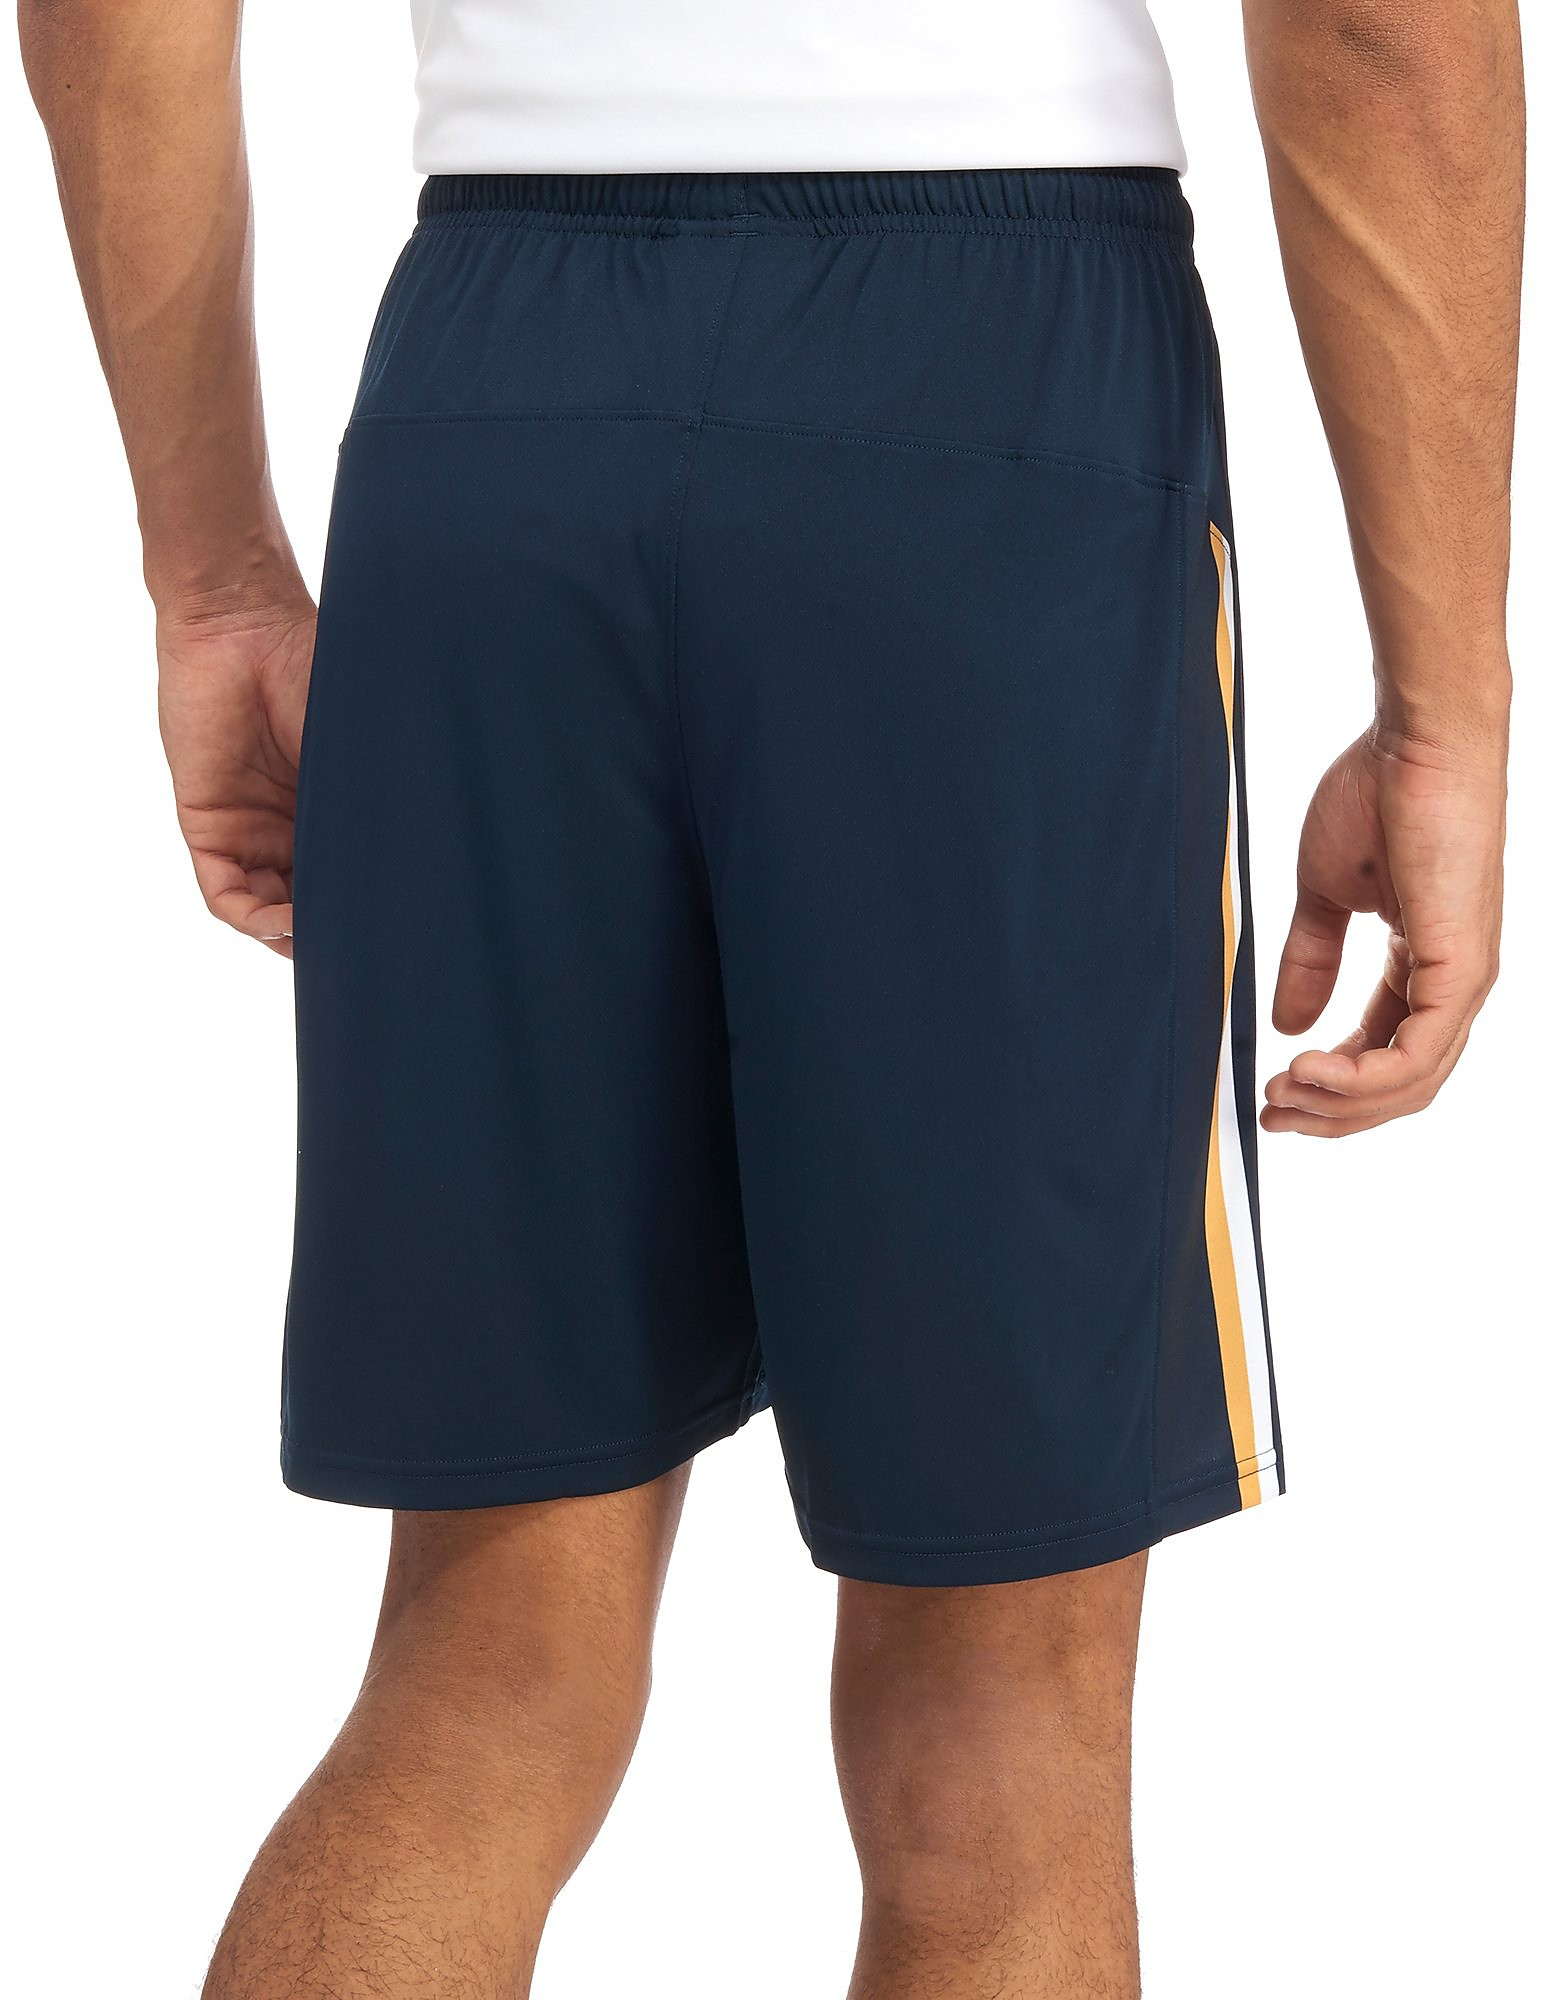 Under Armour Tottenham Hotspur FC 2016/17 Home Shorts